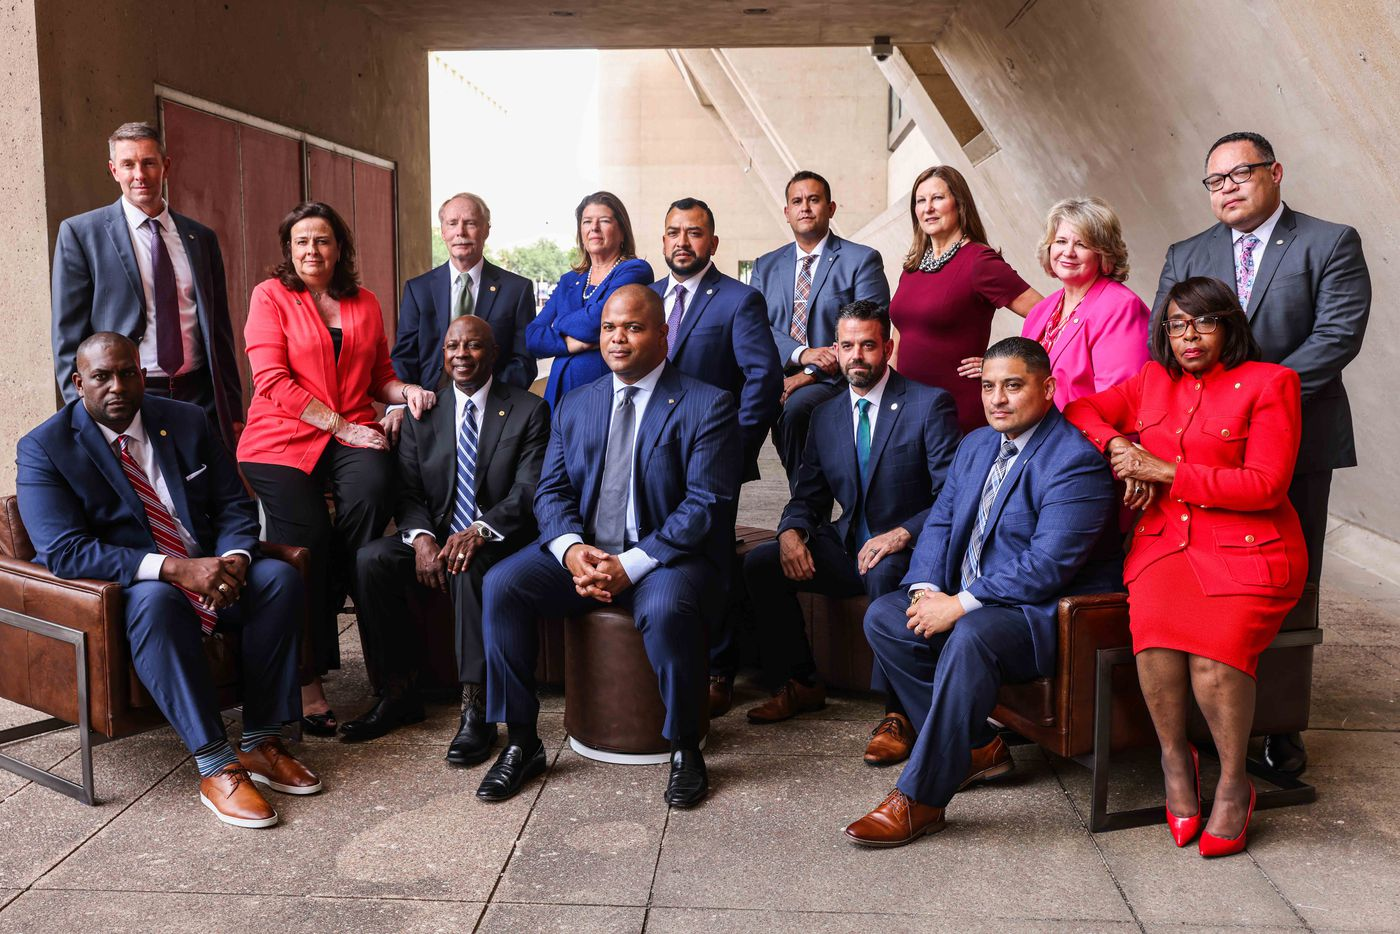 Recently elected Dallas City Council members pose together with Mayor Eric Johnson at the City Hall in Dallas on Monday, June 14, 2021, after their Inauguration ceremony. (Lola Gomez/The Dallas Morning News)